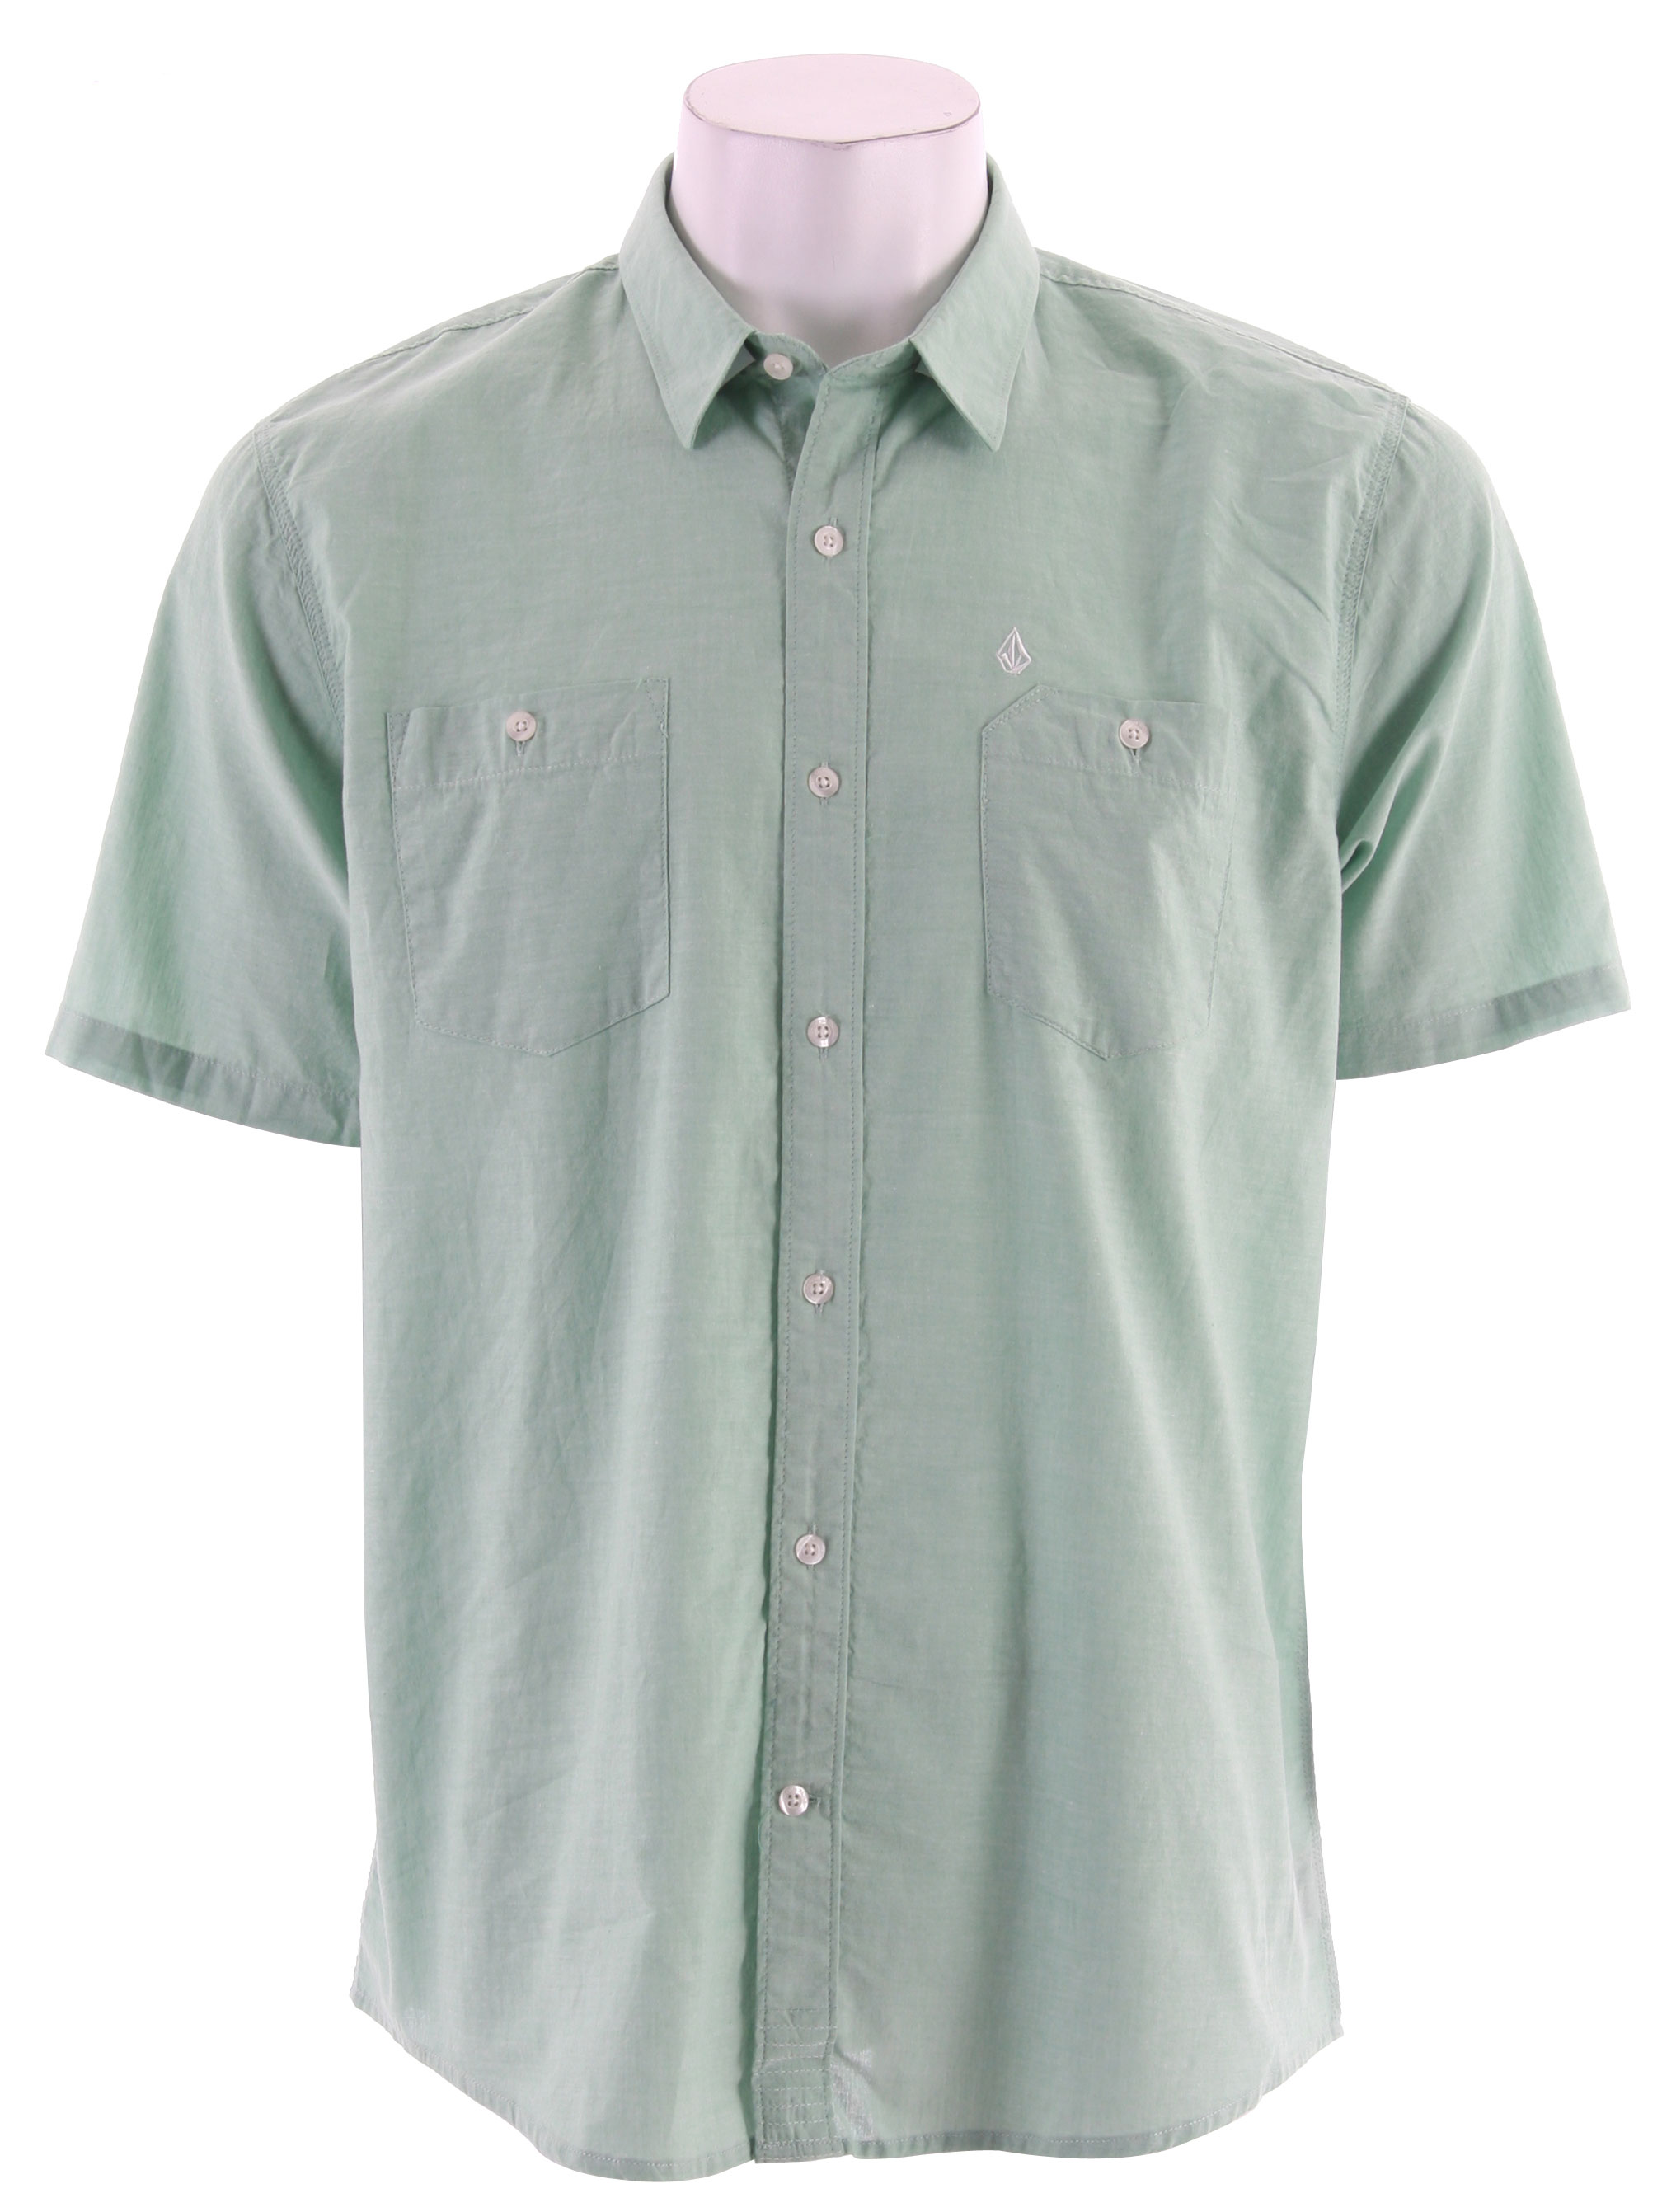 Surf Key Features of the Volcom Retract S/S Shirt: Classic fit shirt with triple needle stitching Double pockets Stone embroidery 100% Cotton Chambrey - $27.95